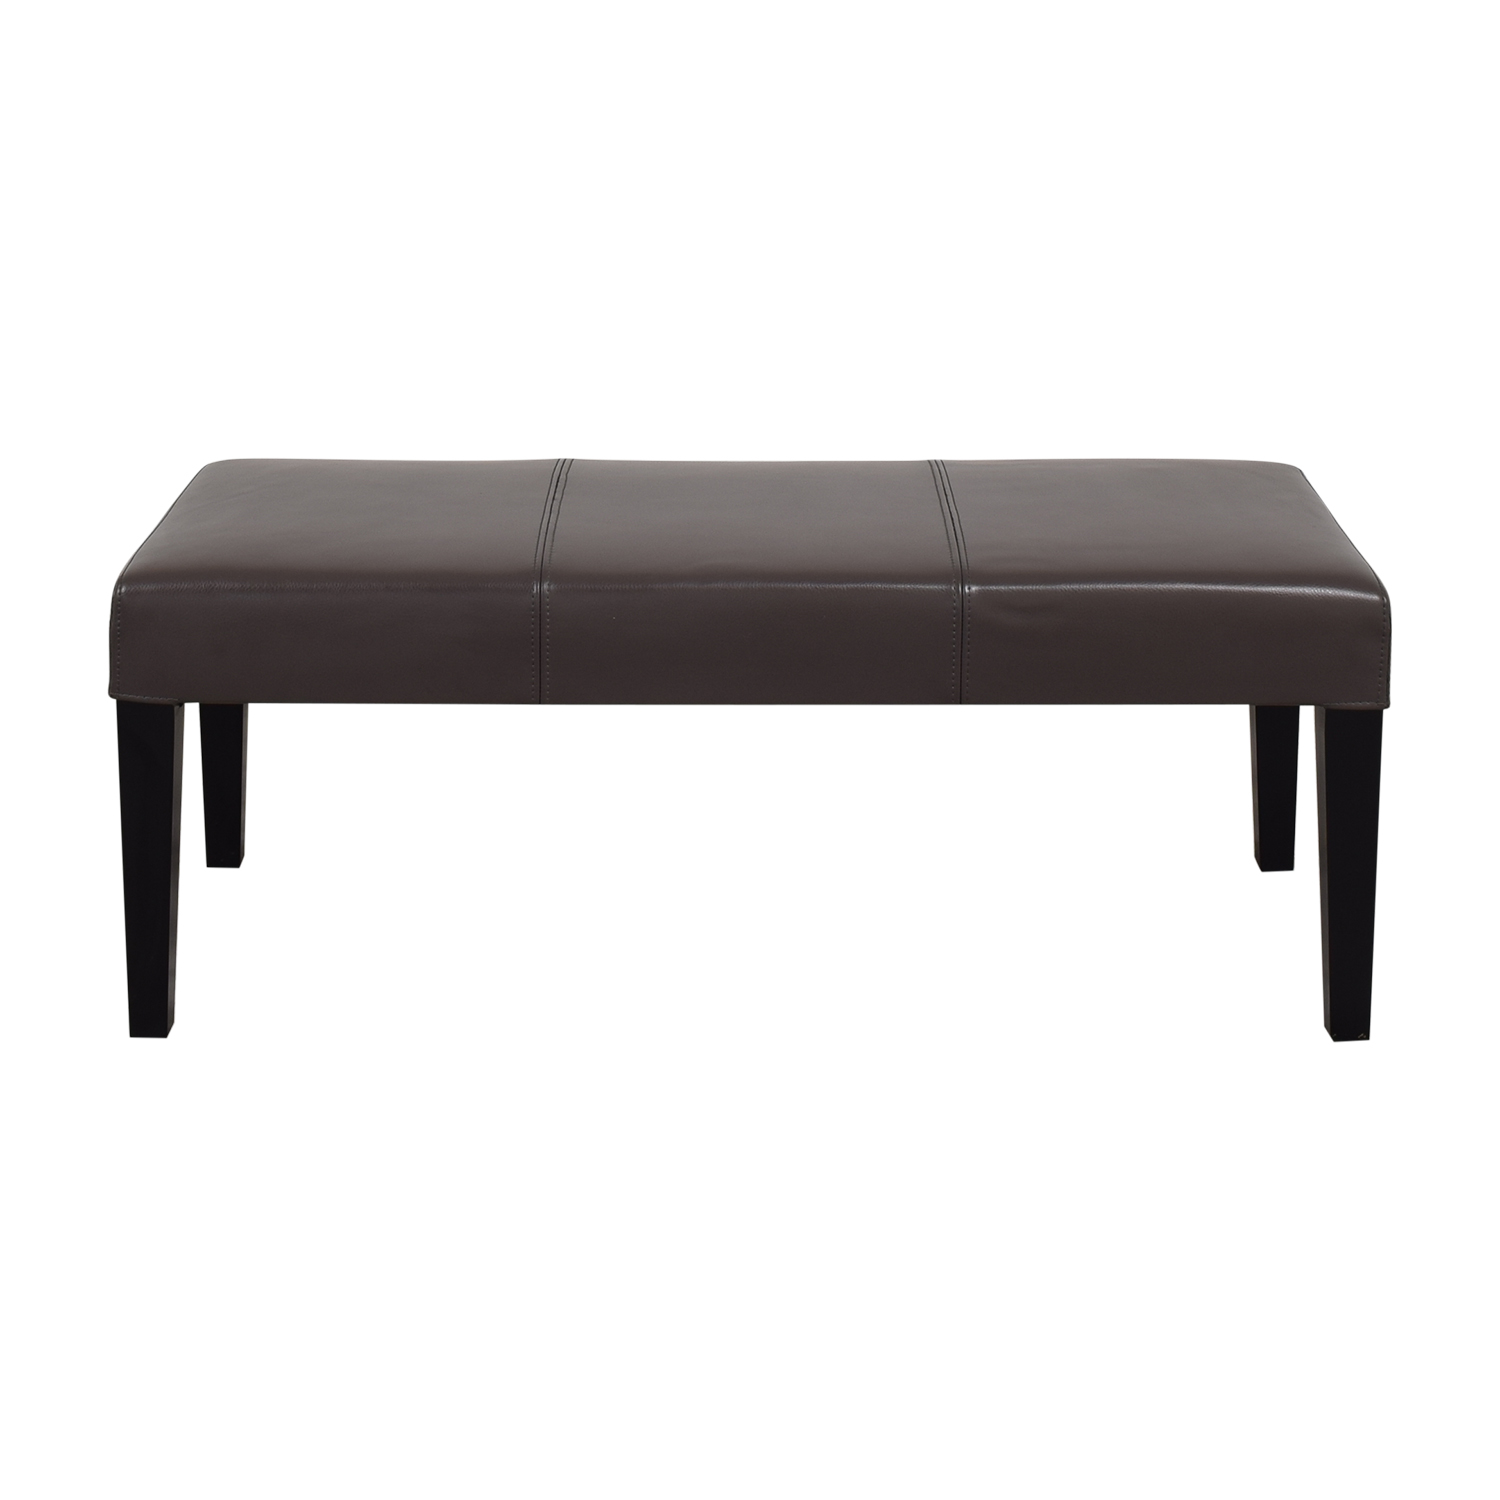 Crate & Barrel Crate & Barrel Lowe Backless Bench on sale